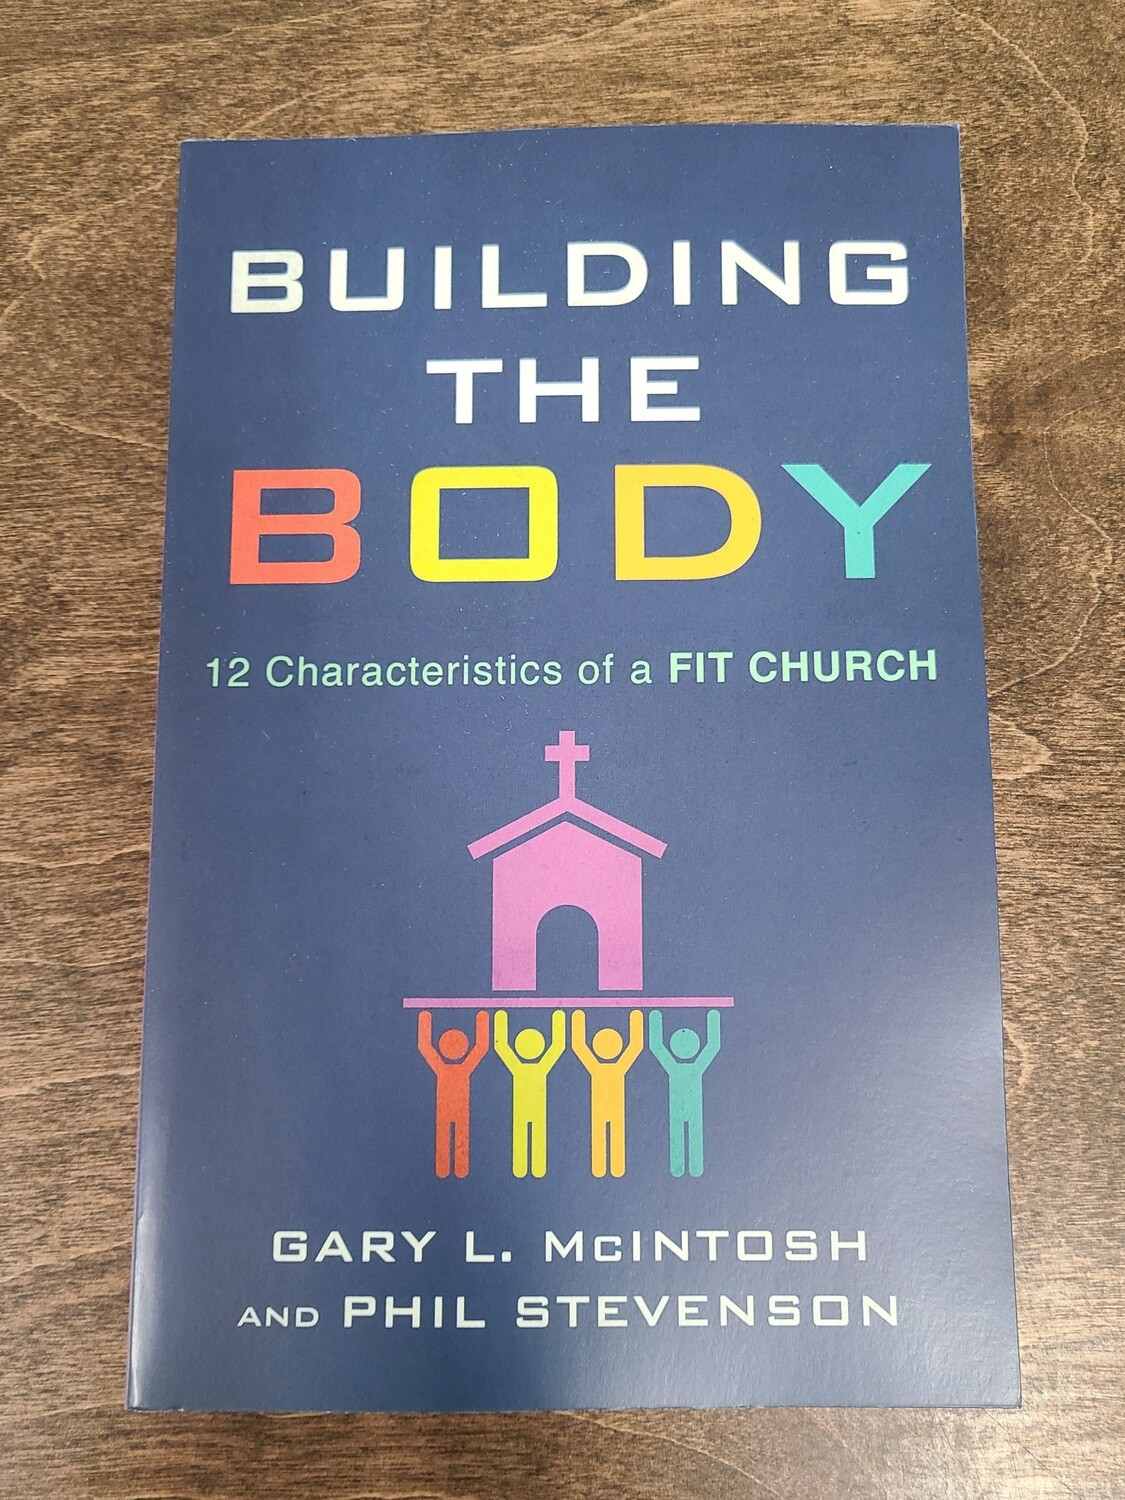 Building the Body: 12 Characteristics of a Fit Church by Gary L. McIntosh and Phil Stevenson